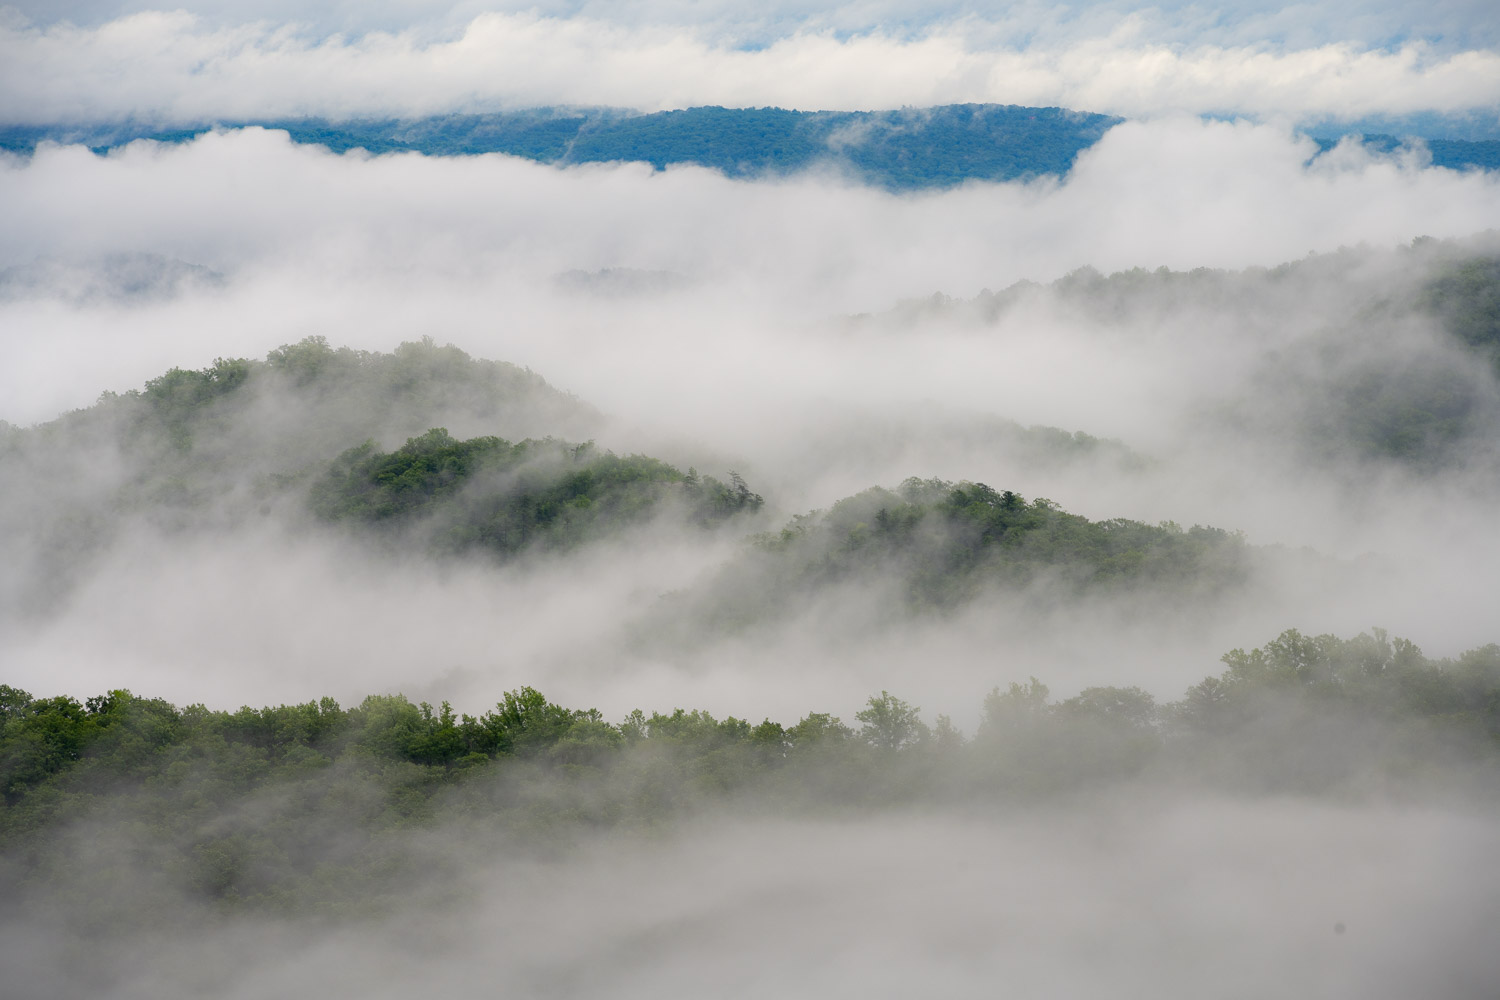 Layered mountain ridges and morning fog from Skyline Drive in Shenandoah National Park, Virginia